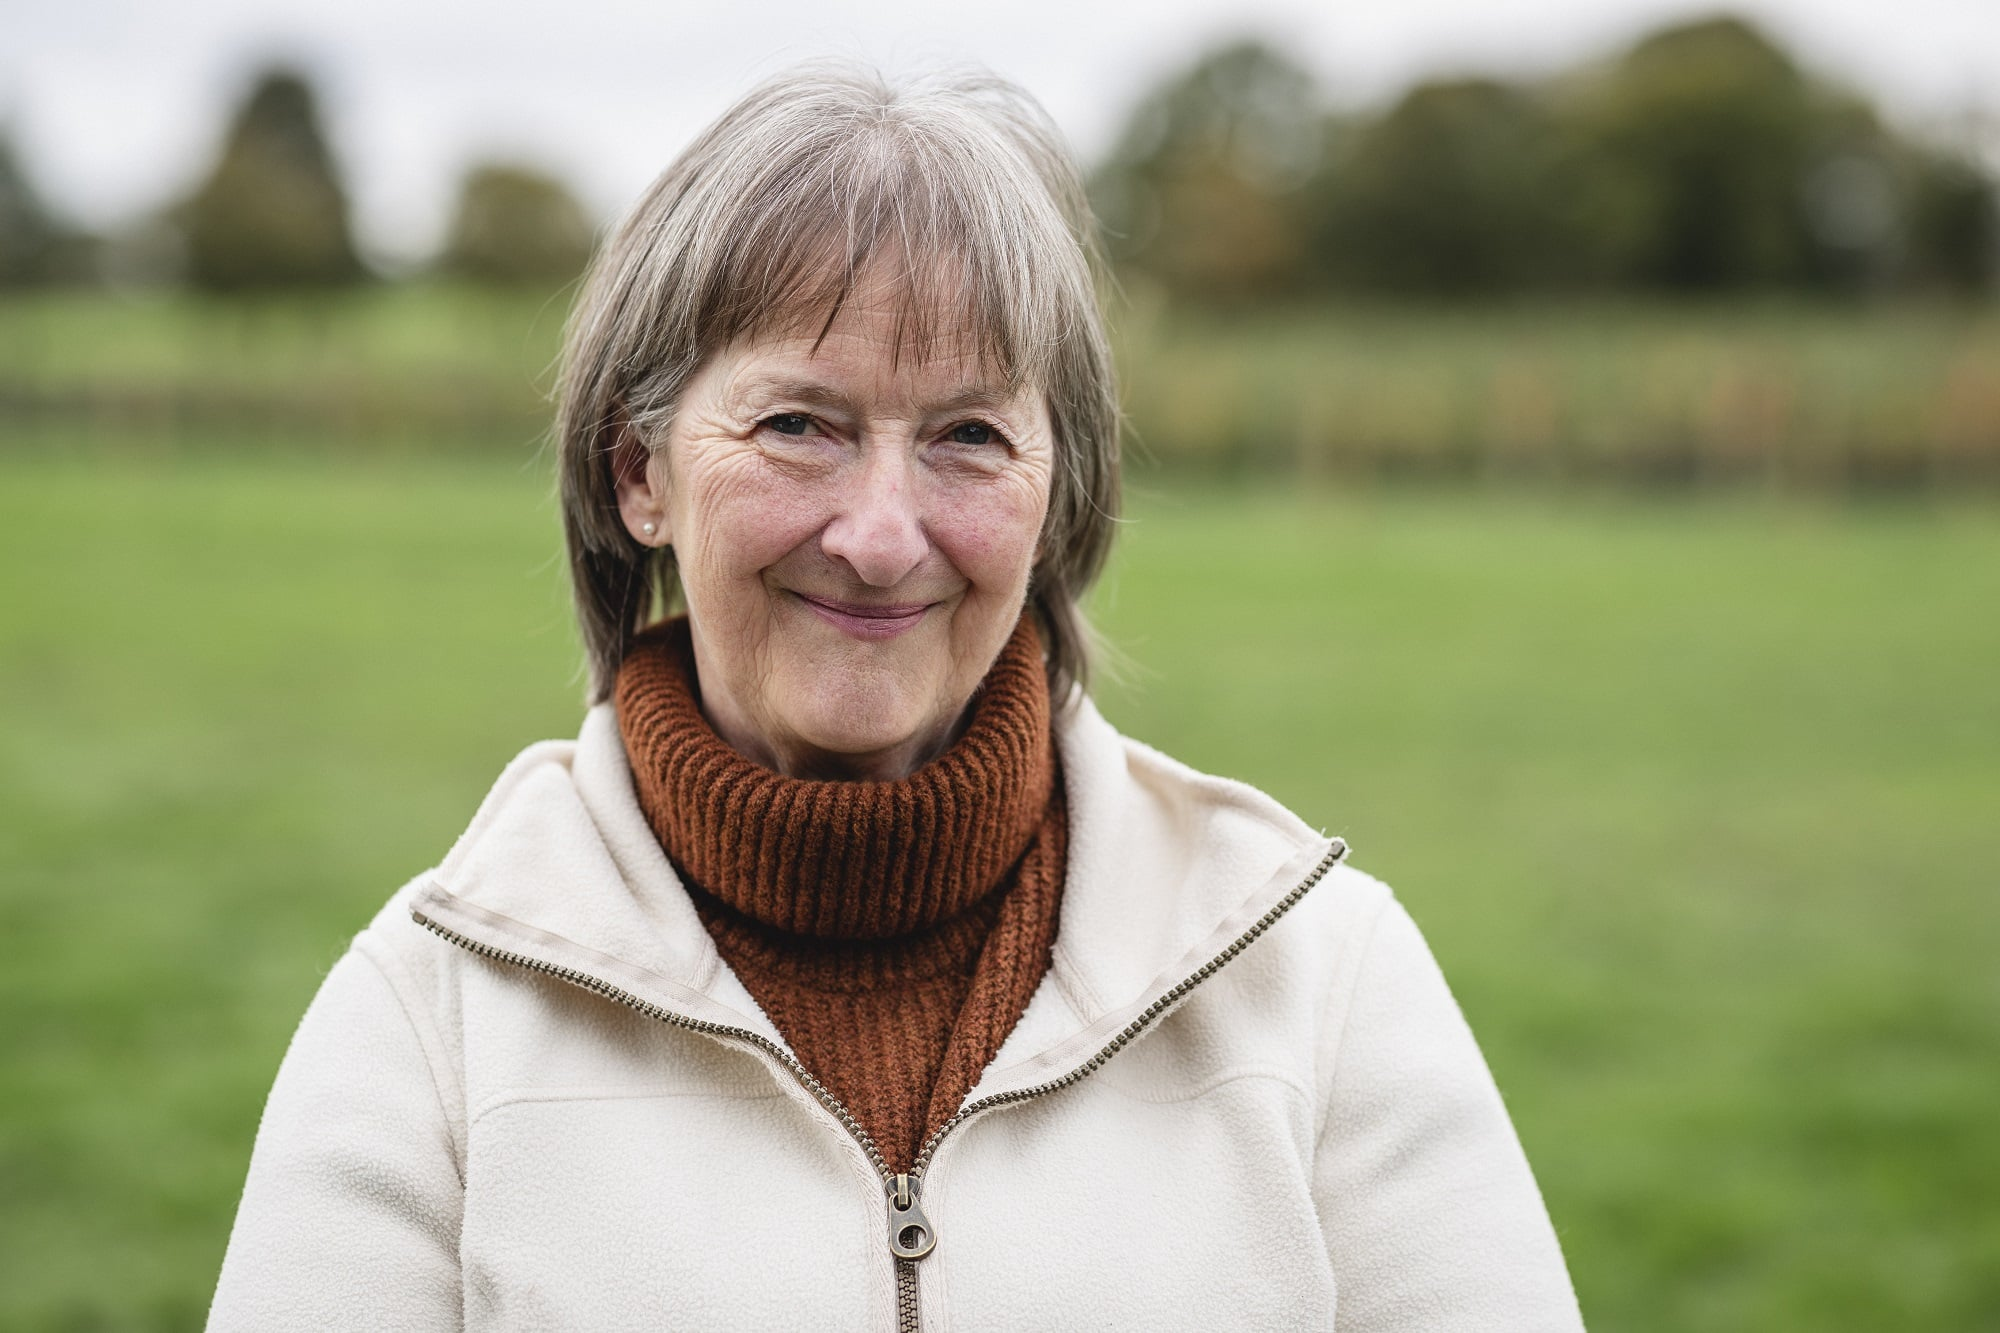 Portait of a senior woman standing in a field while at a farm in Autumn, smiling while looking at the camera.